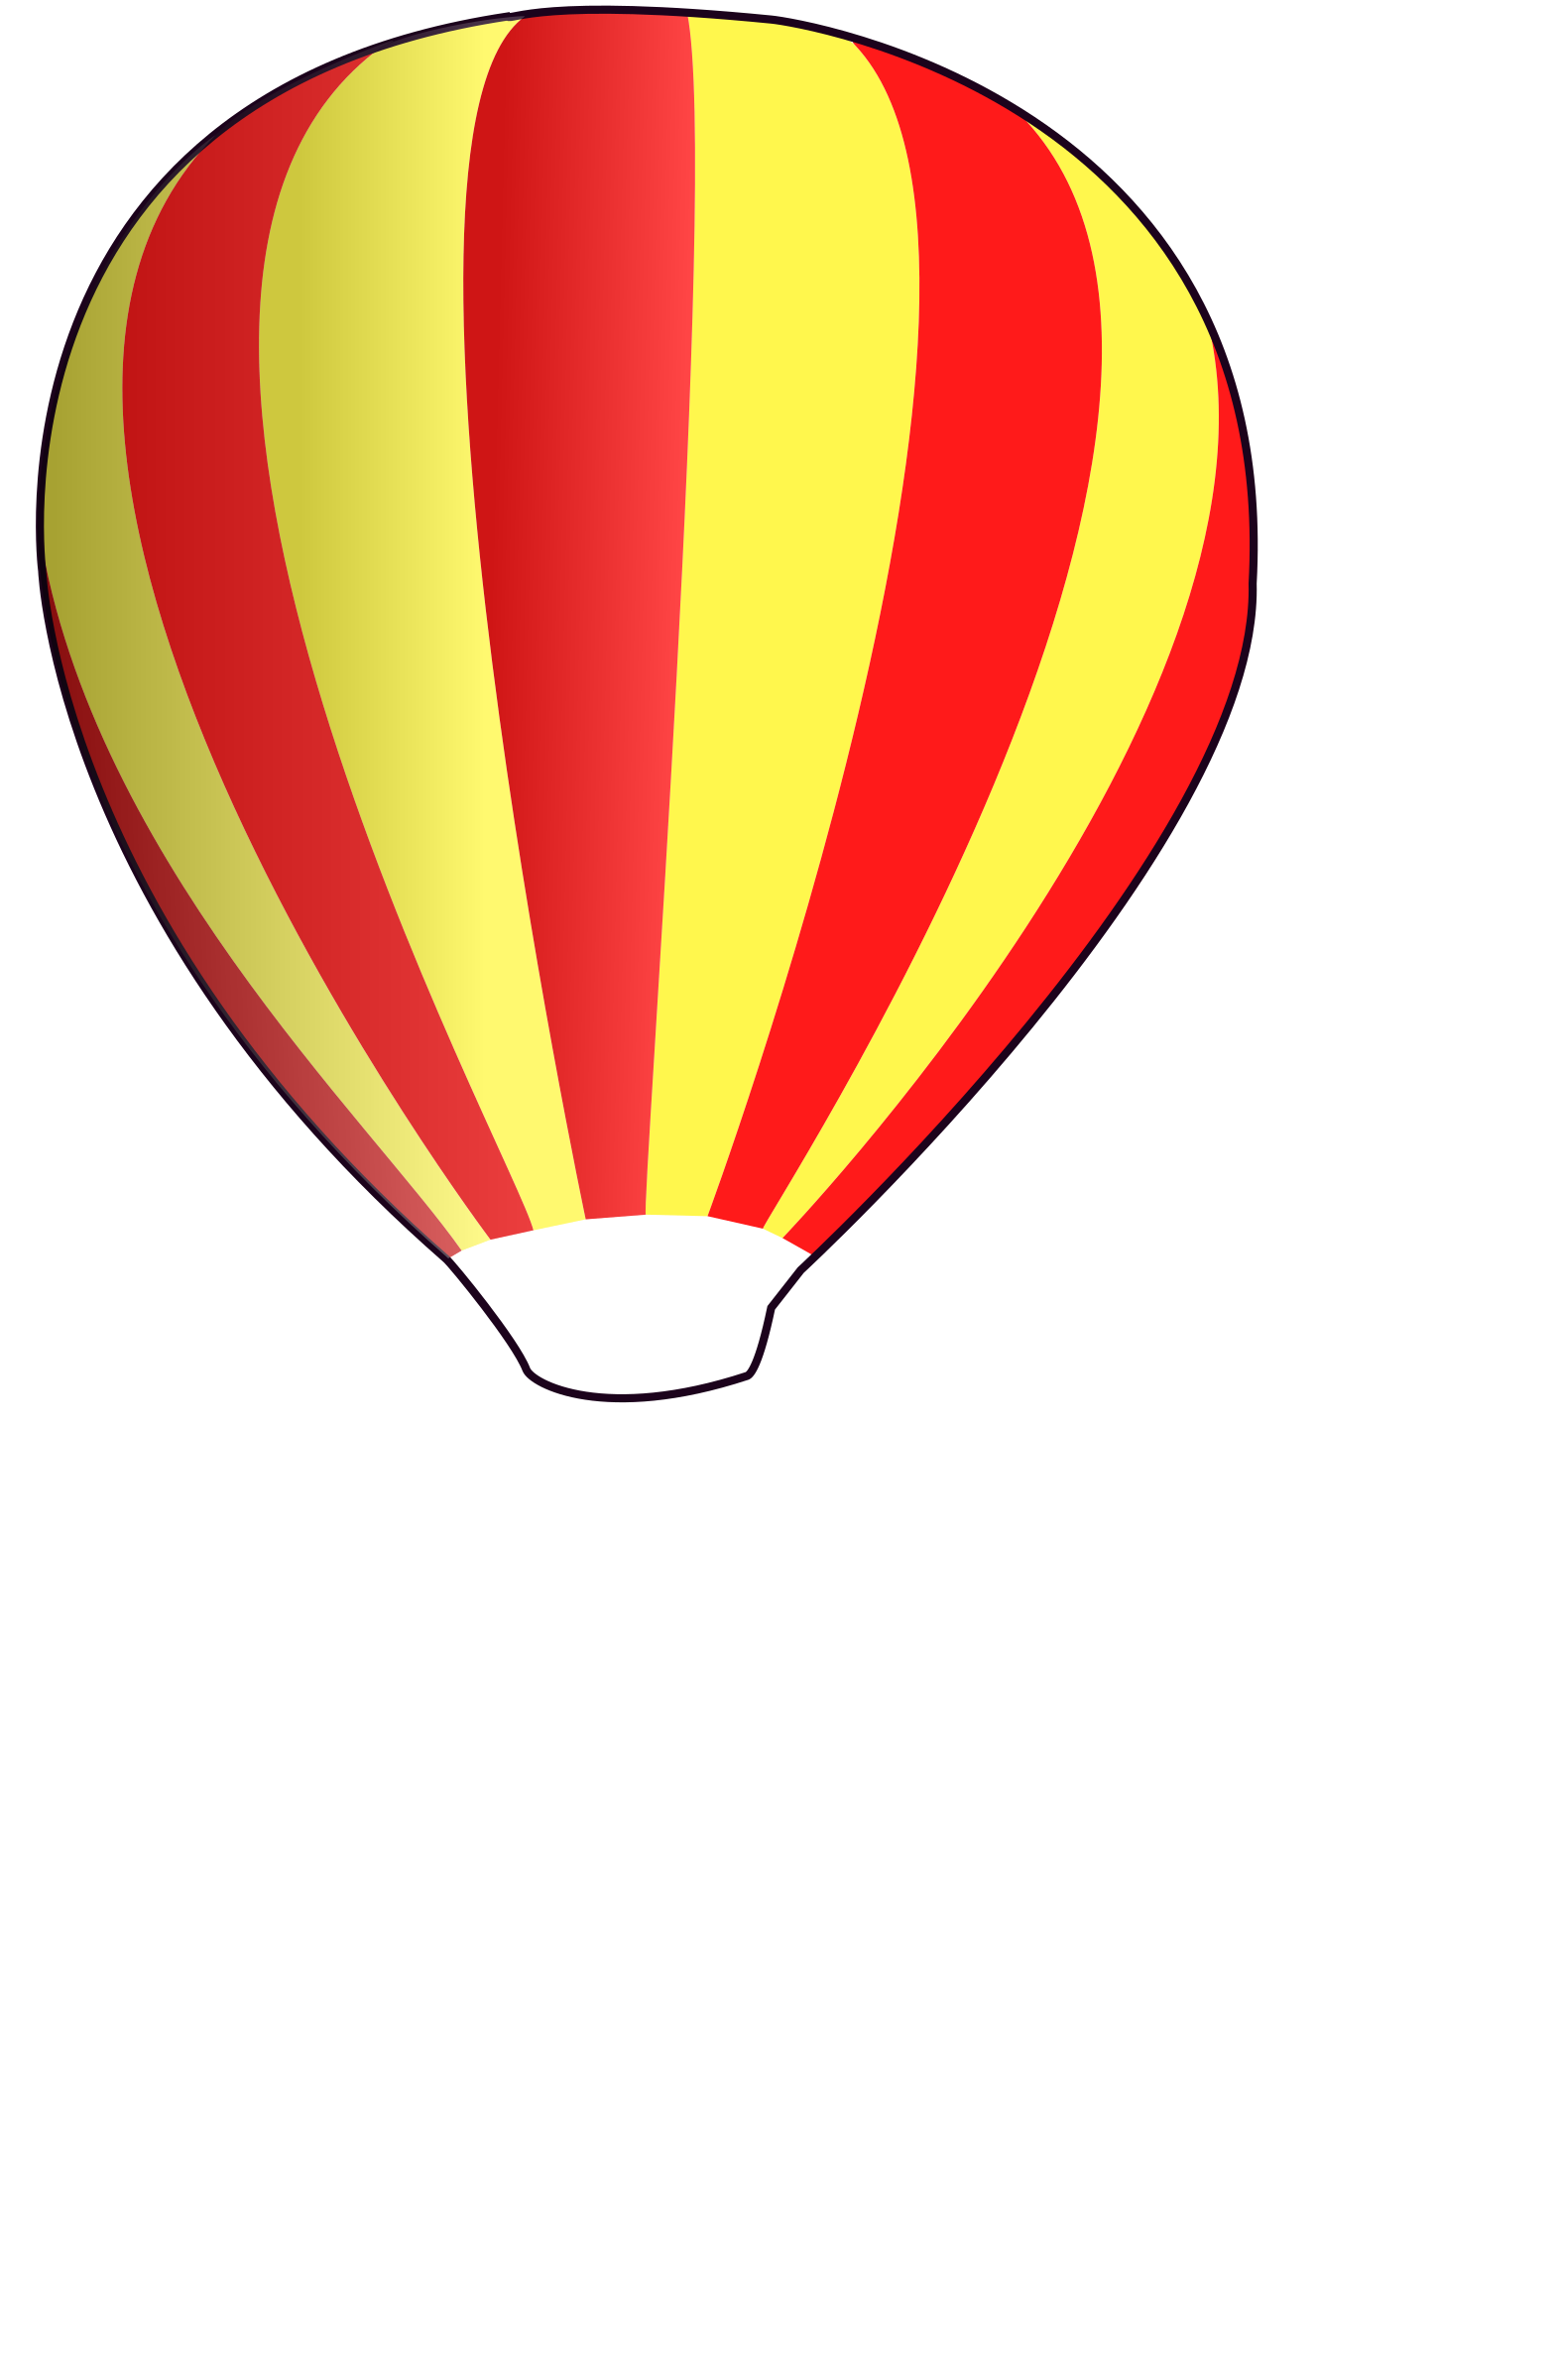 hot air balloon - (Work In Progress) by ryanlerch